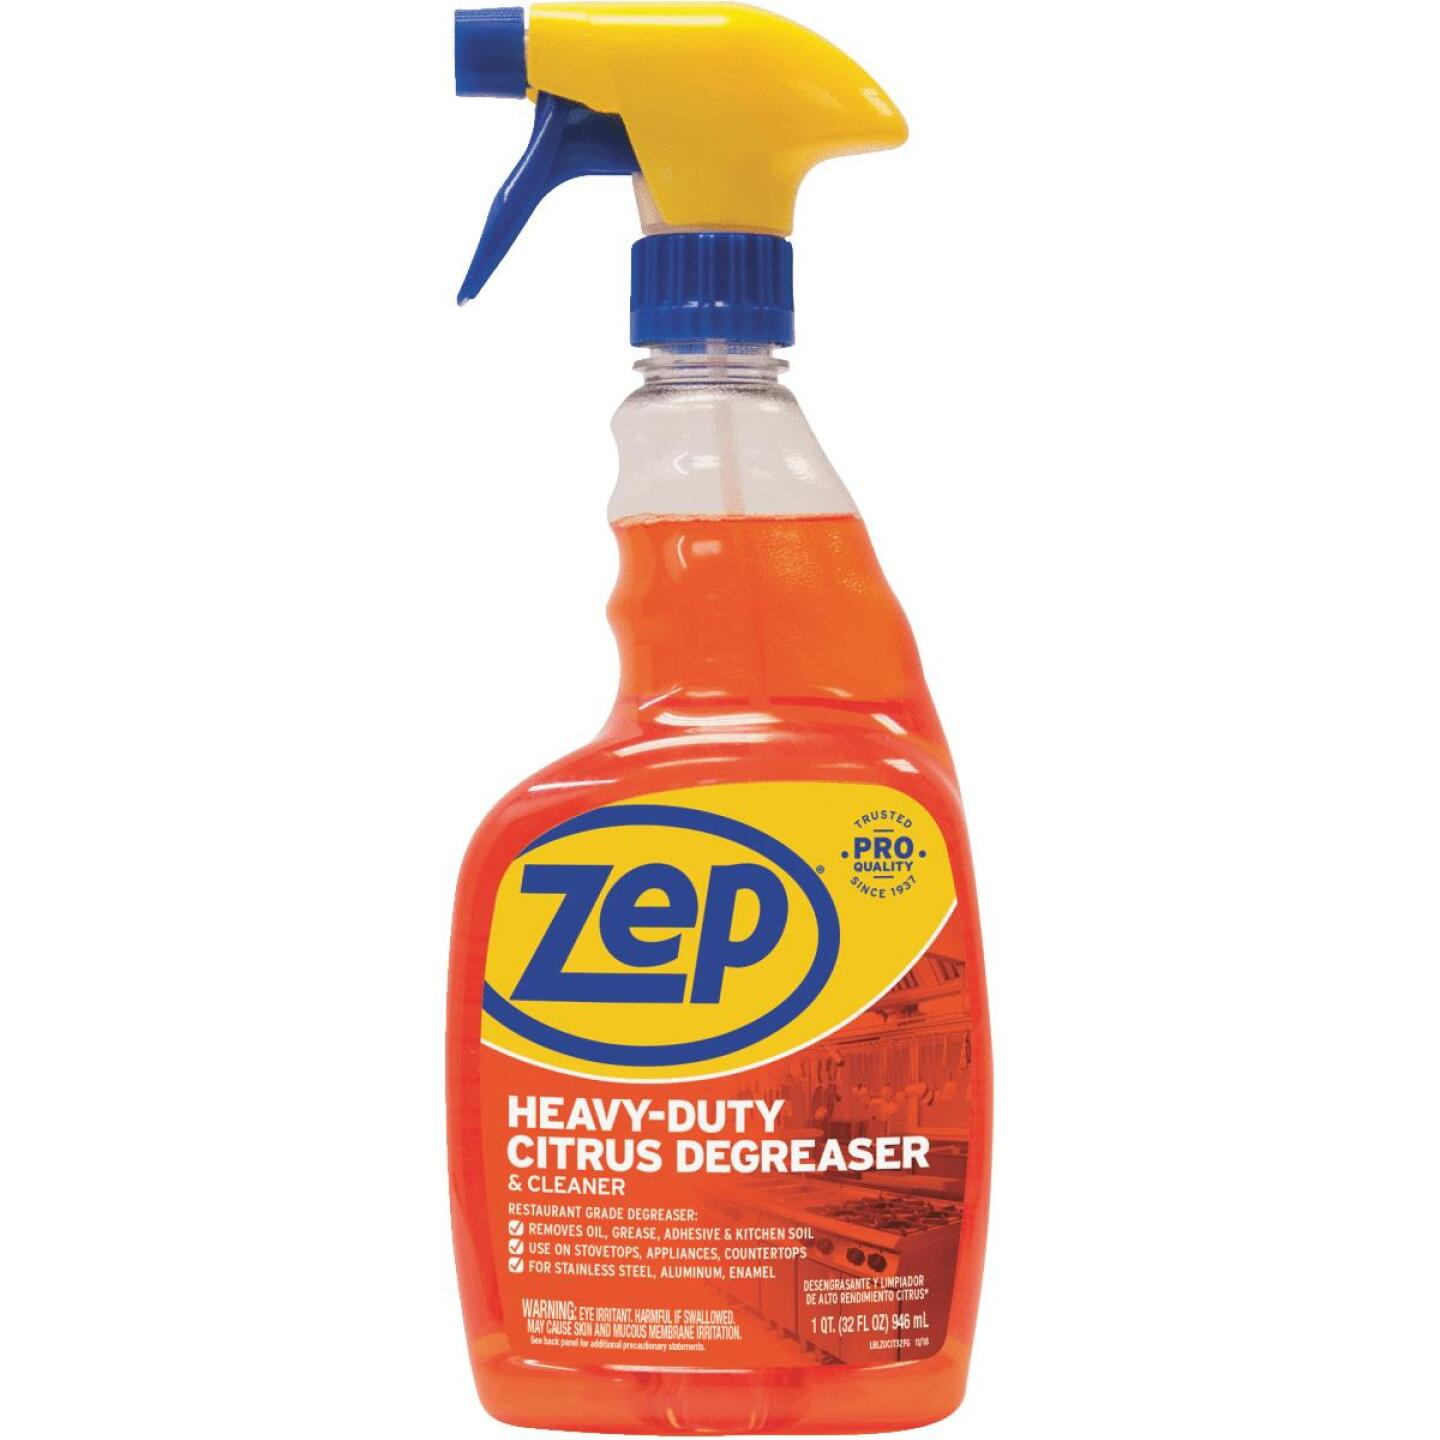 Zep Commercial Citrus 32 Oz. Liquid Cleaner & Degreaser Image 1